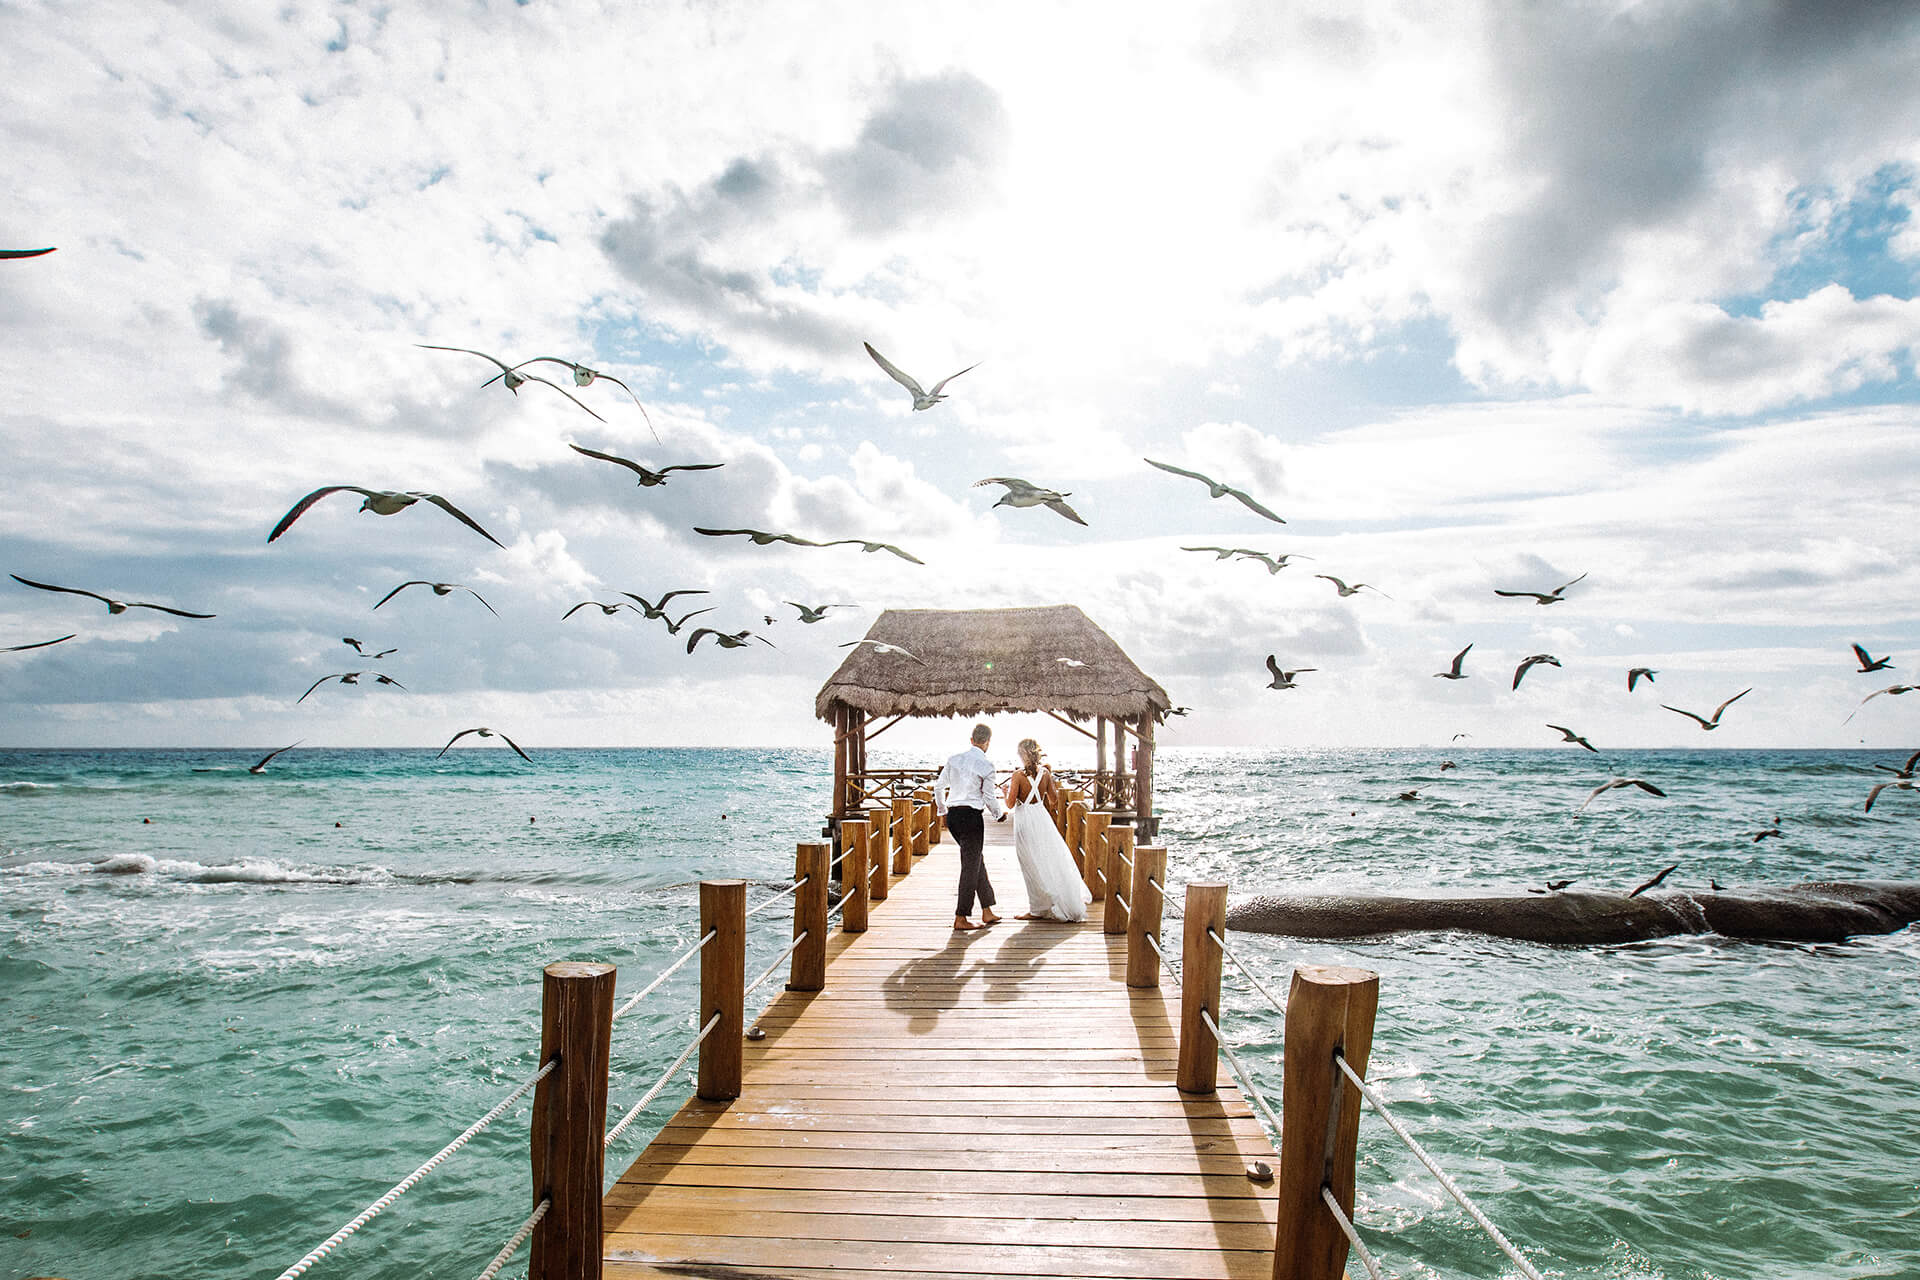 Couple getting married on a pier in Mexico